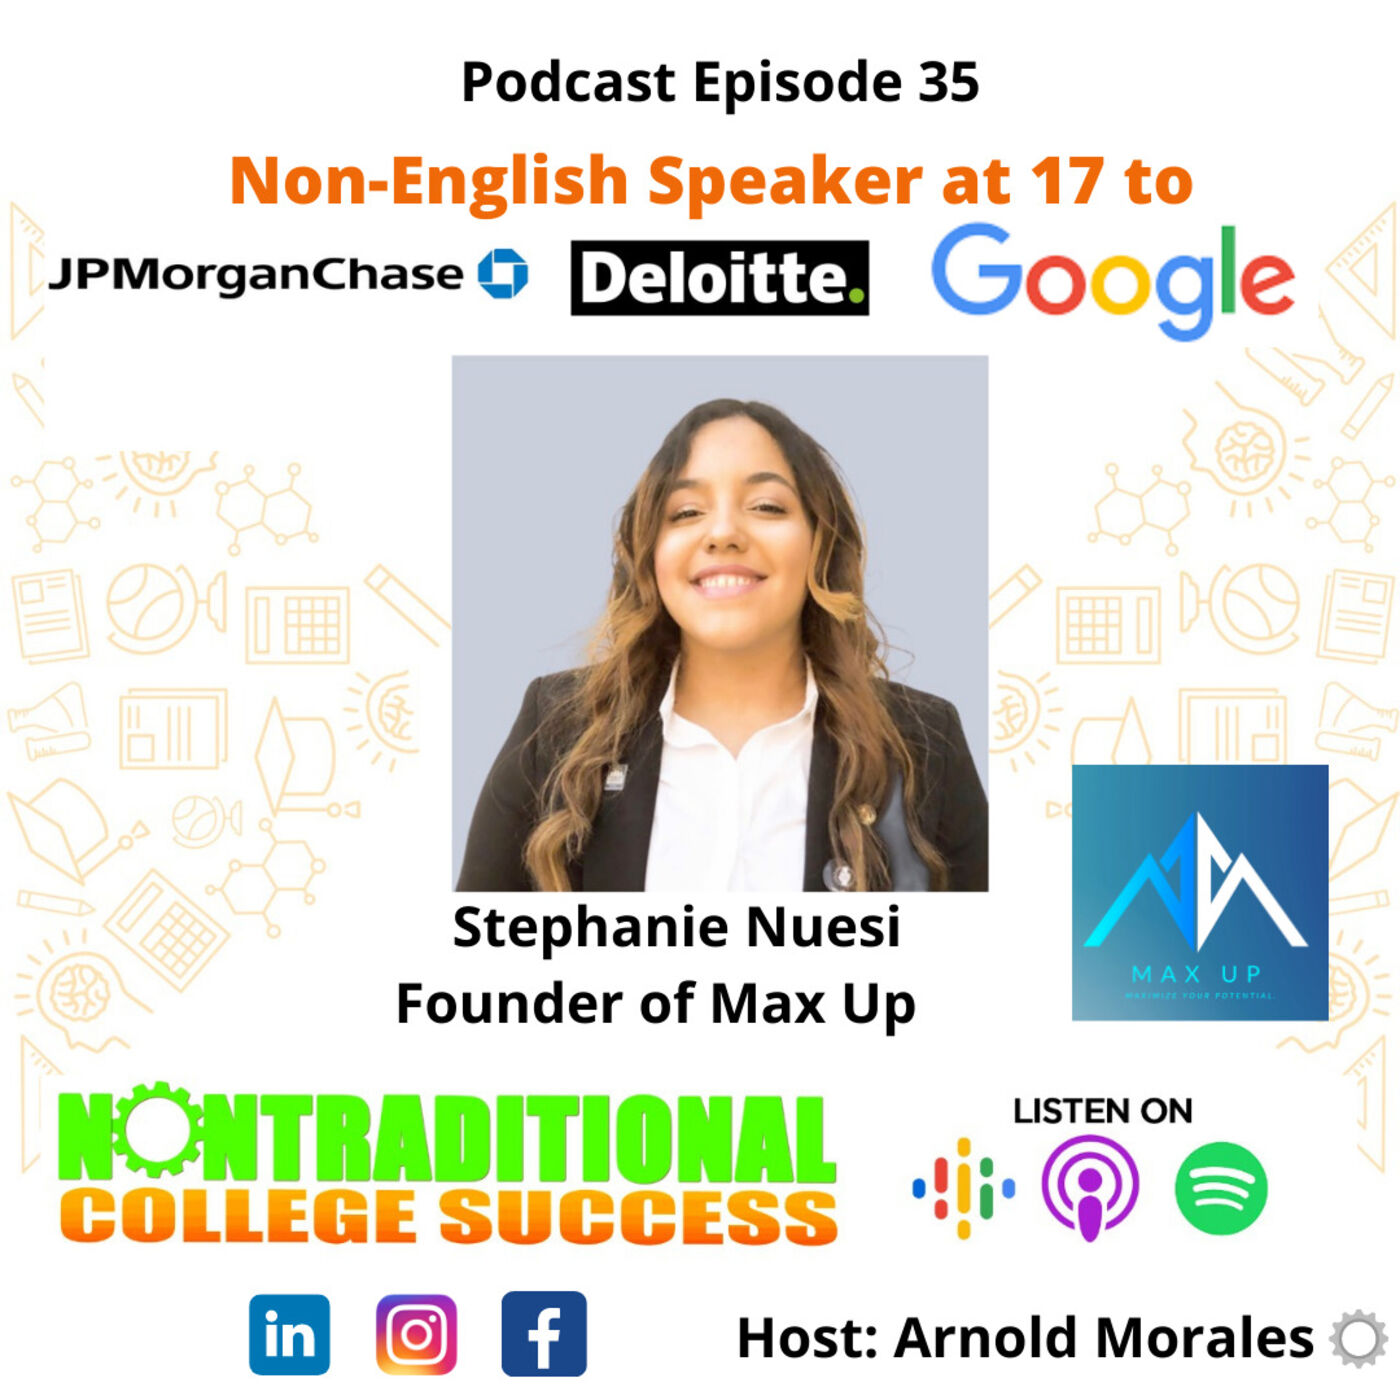 Non-English Speaker at 17 to Google, Deloitte, & J.P. Morgan Chase! with Stephanie Nuesi (Max Up) Ep 35